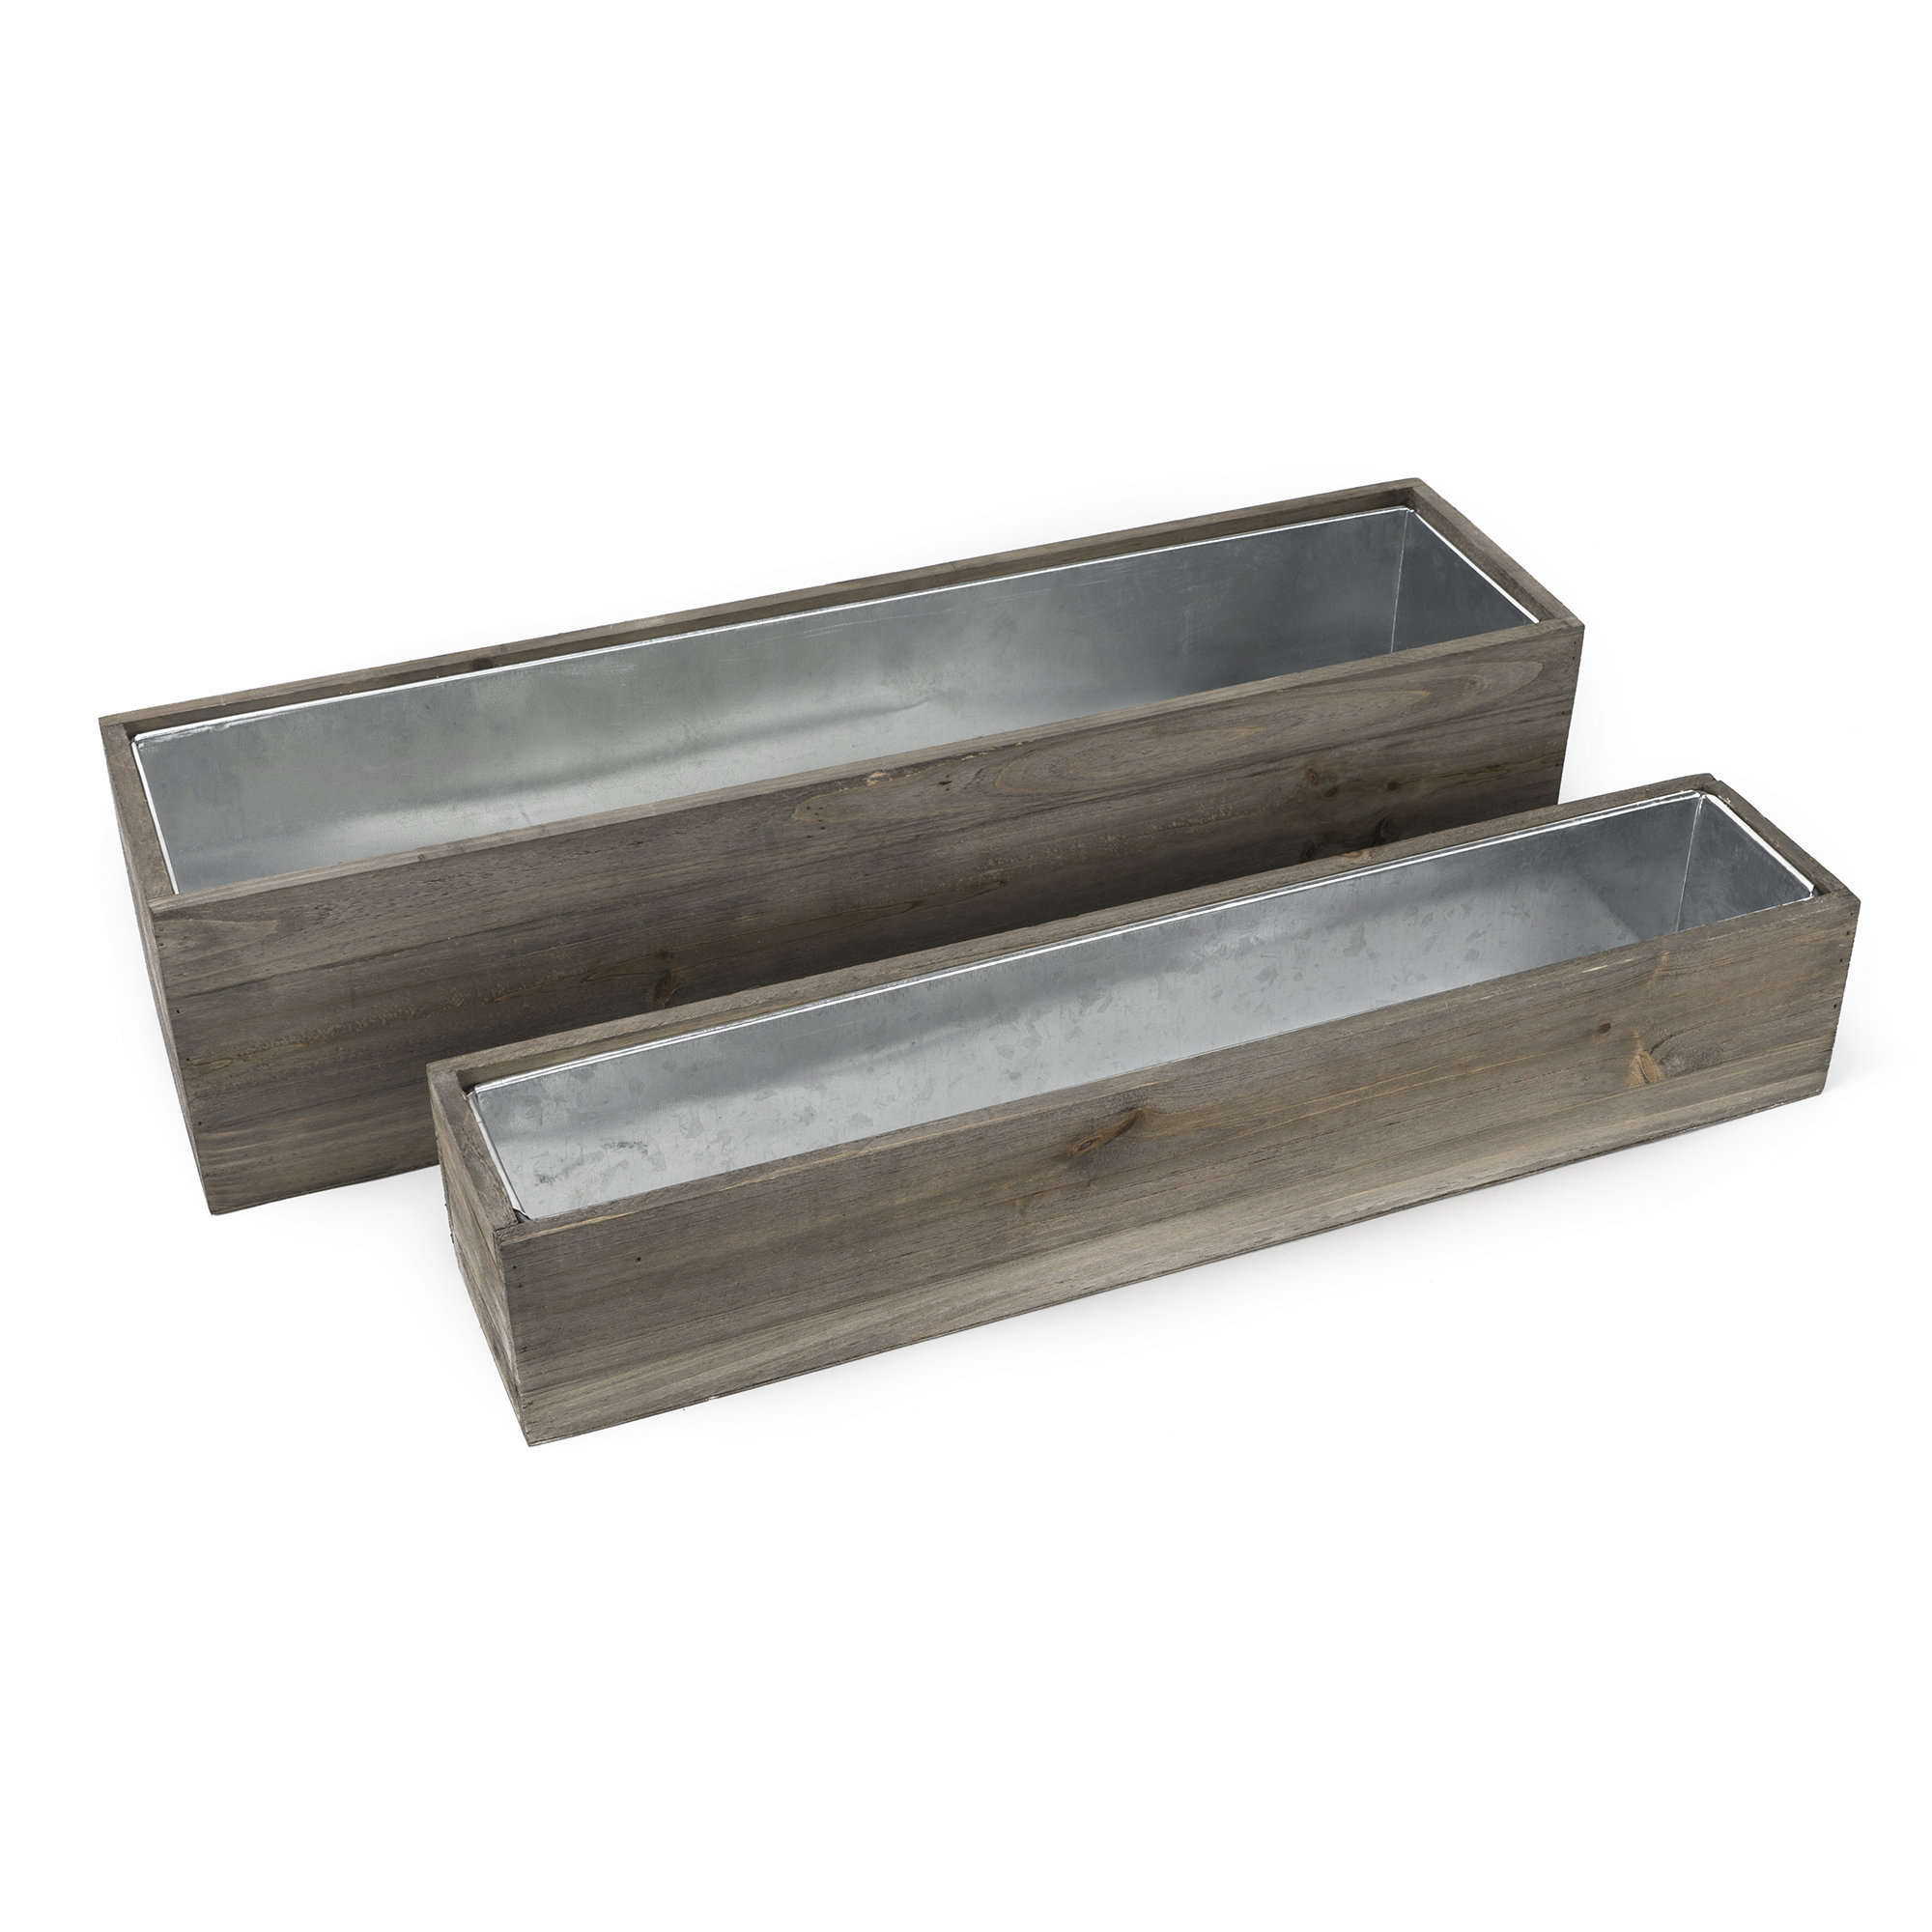 "Wood Rectangle Planter Box w/ Zinc Liner Natural H-6"" W-24"", H-4"" W-22"", Set of 2 (Pack of 4 sets)"